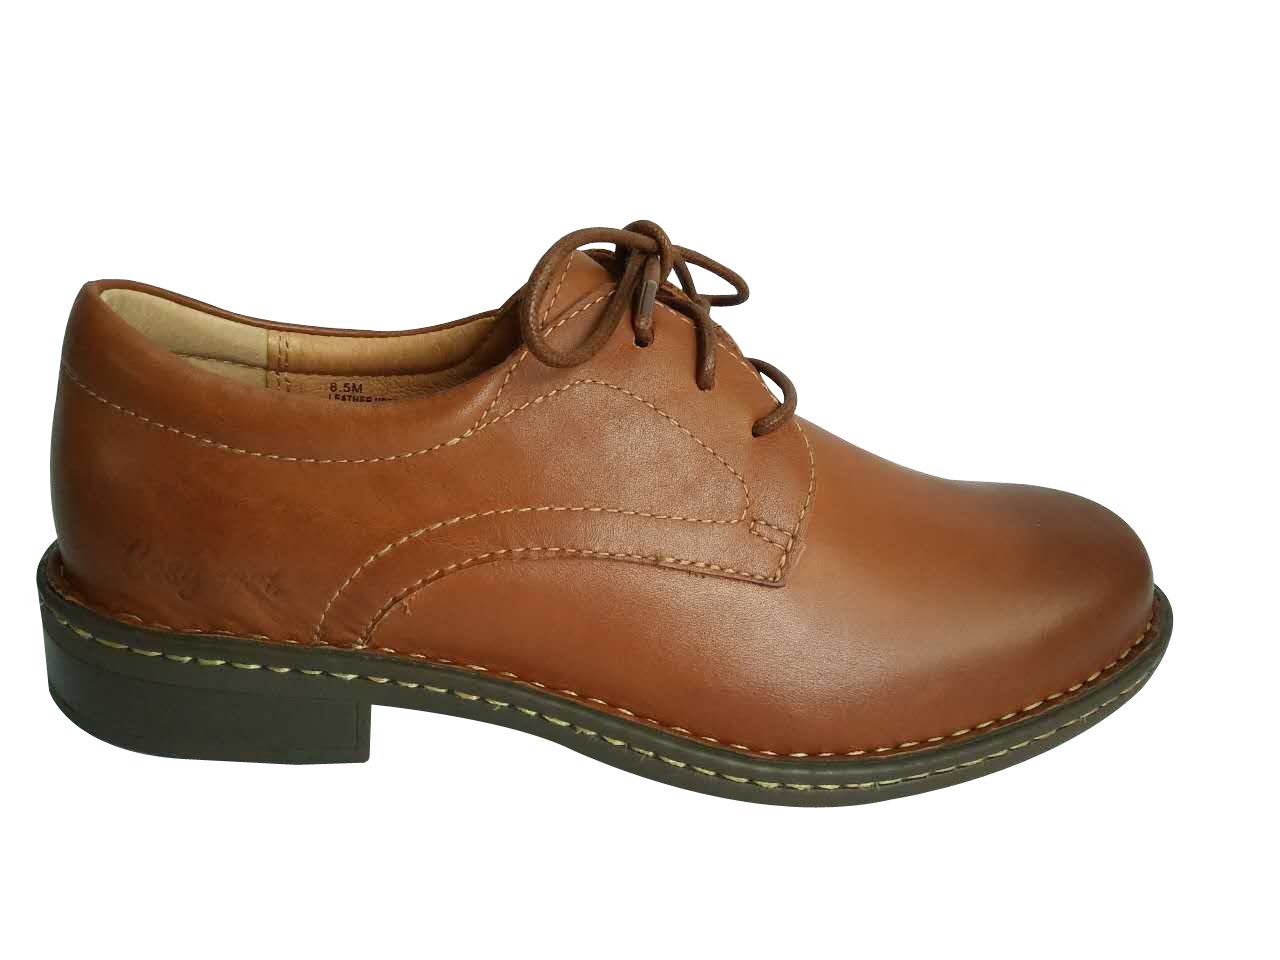 Cosycost business men Oxfords working formal shoes 009M(8.5, brown)